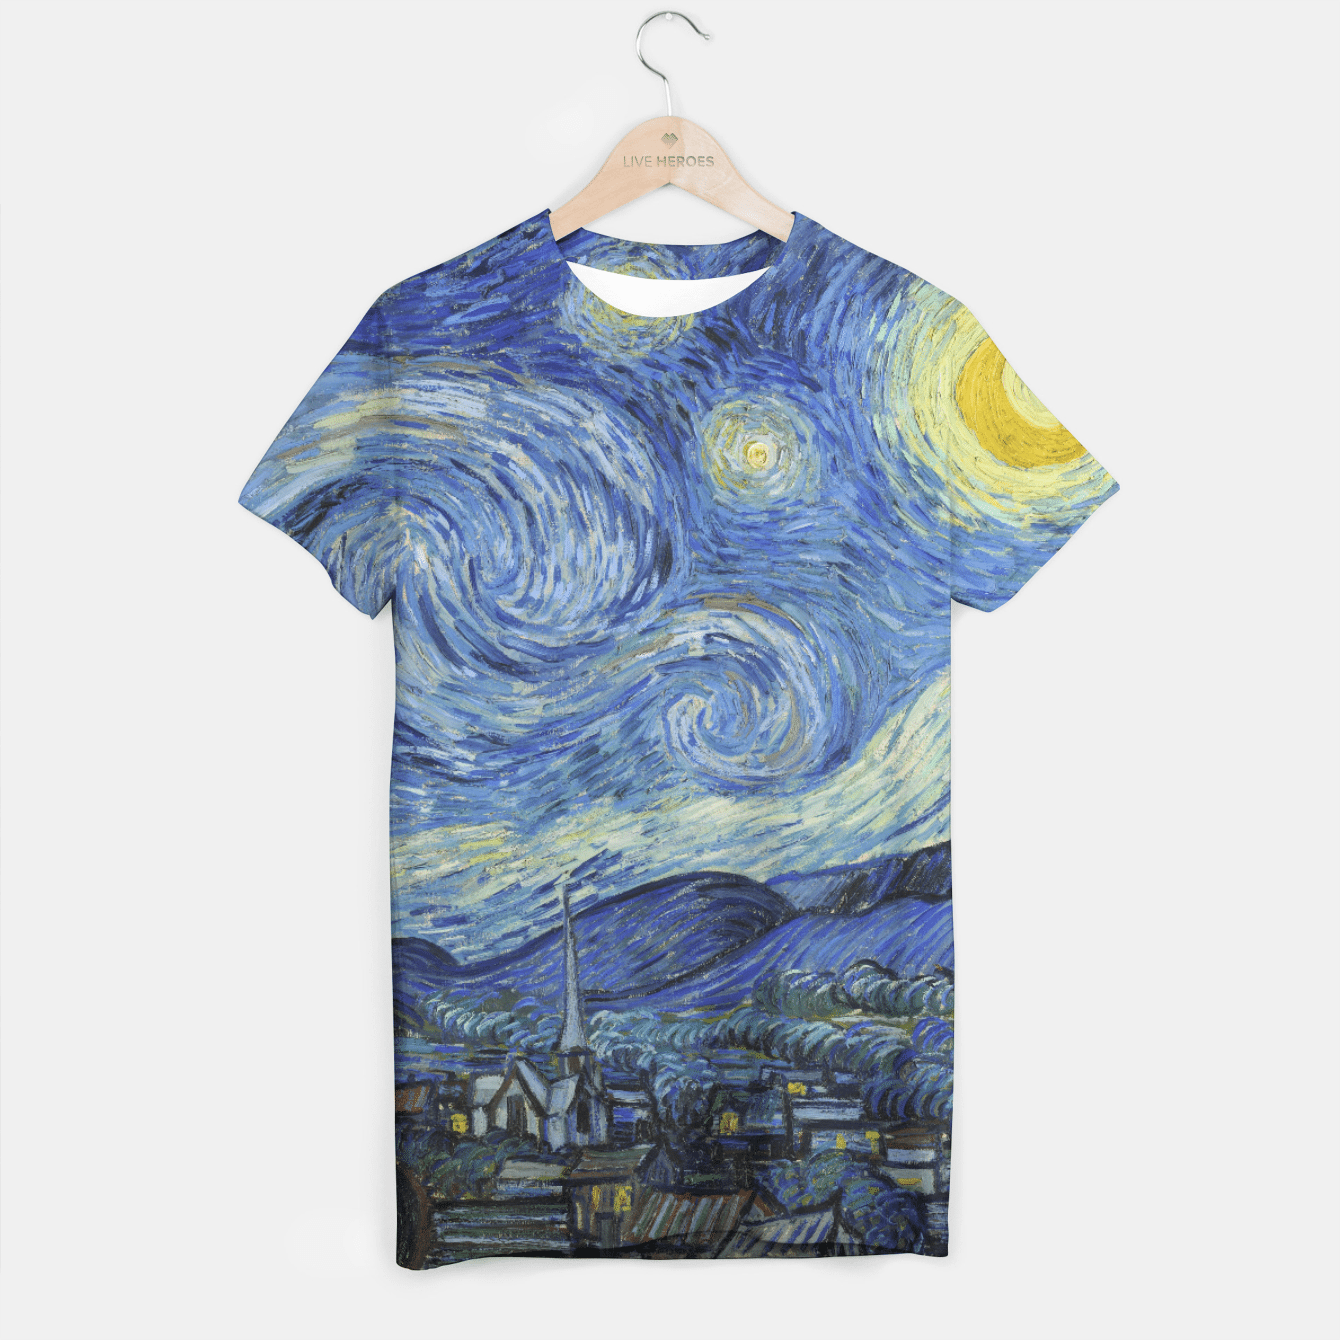 STARRY NiGHT BY ViNCENT VAN GOGH T-shirt, Live Heroes